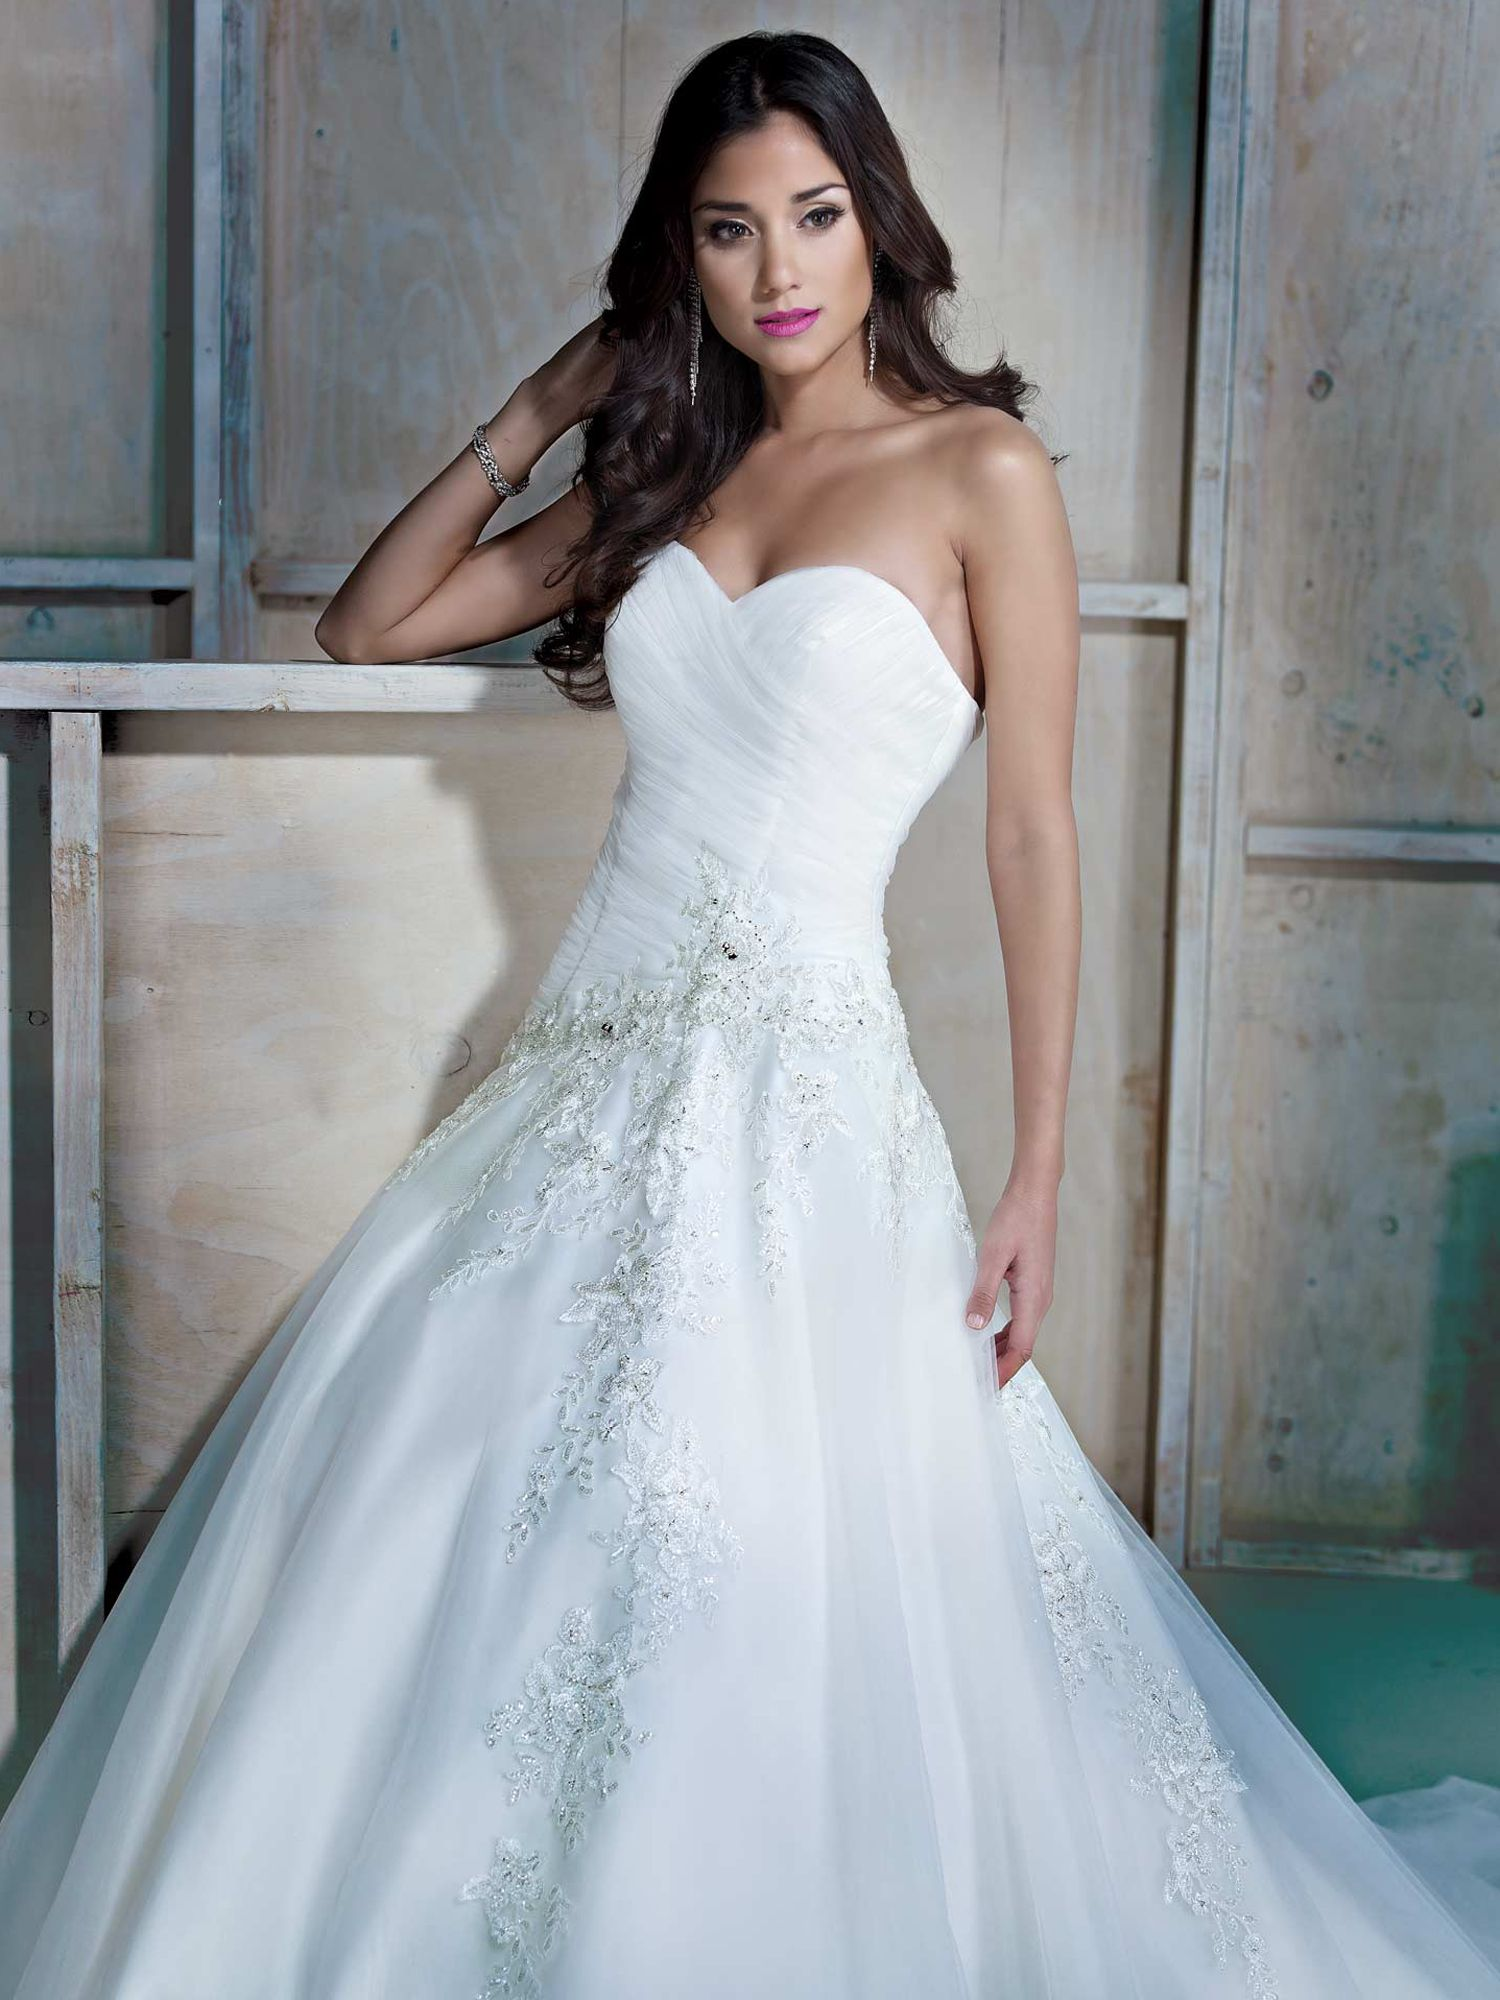 Available at rebeccas bridal boutique north syracuse ny www available at rebeccas bridal boutique north syracuse ny rebeccasbridalboutique ombrellifo Choice Image